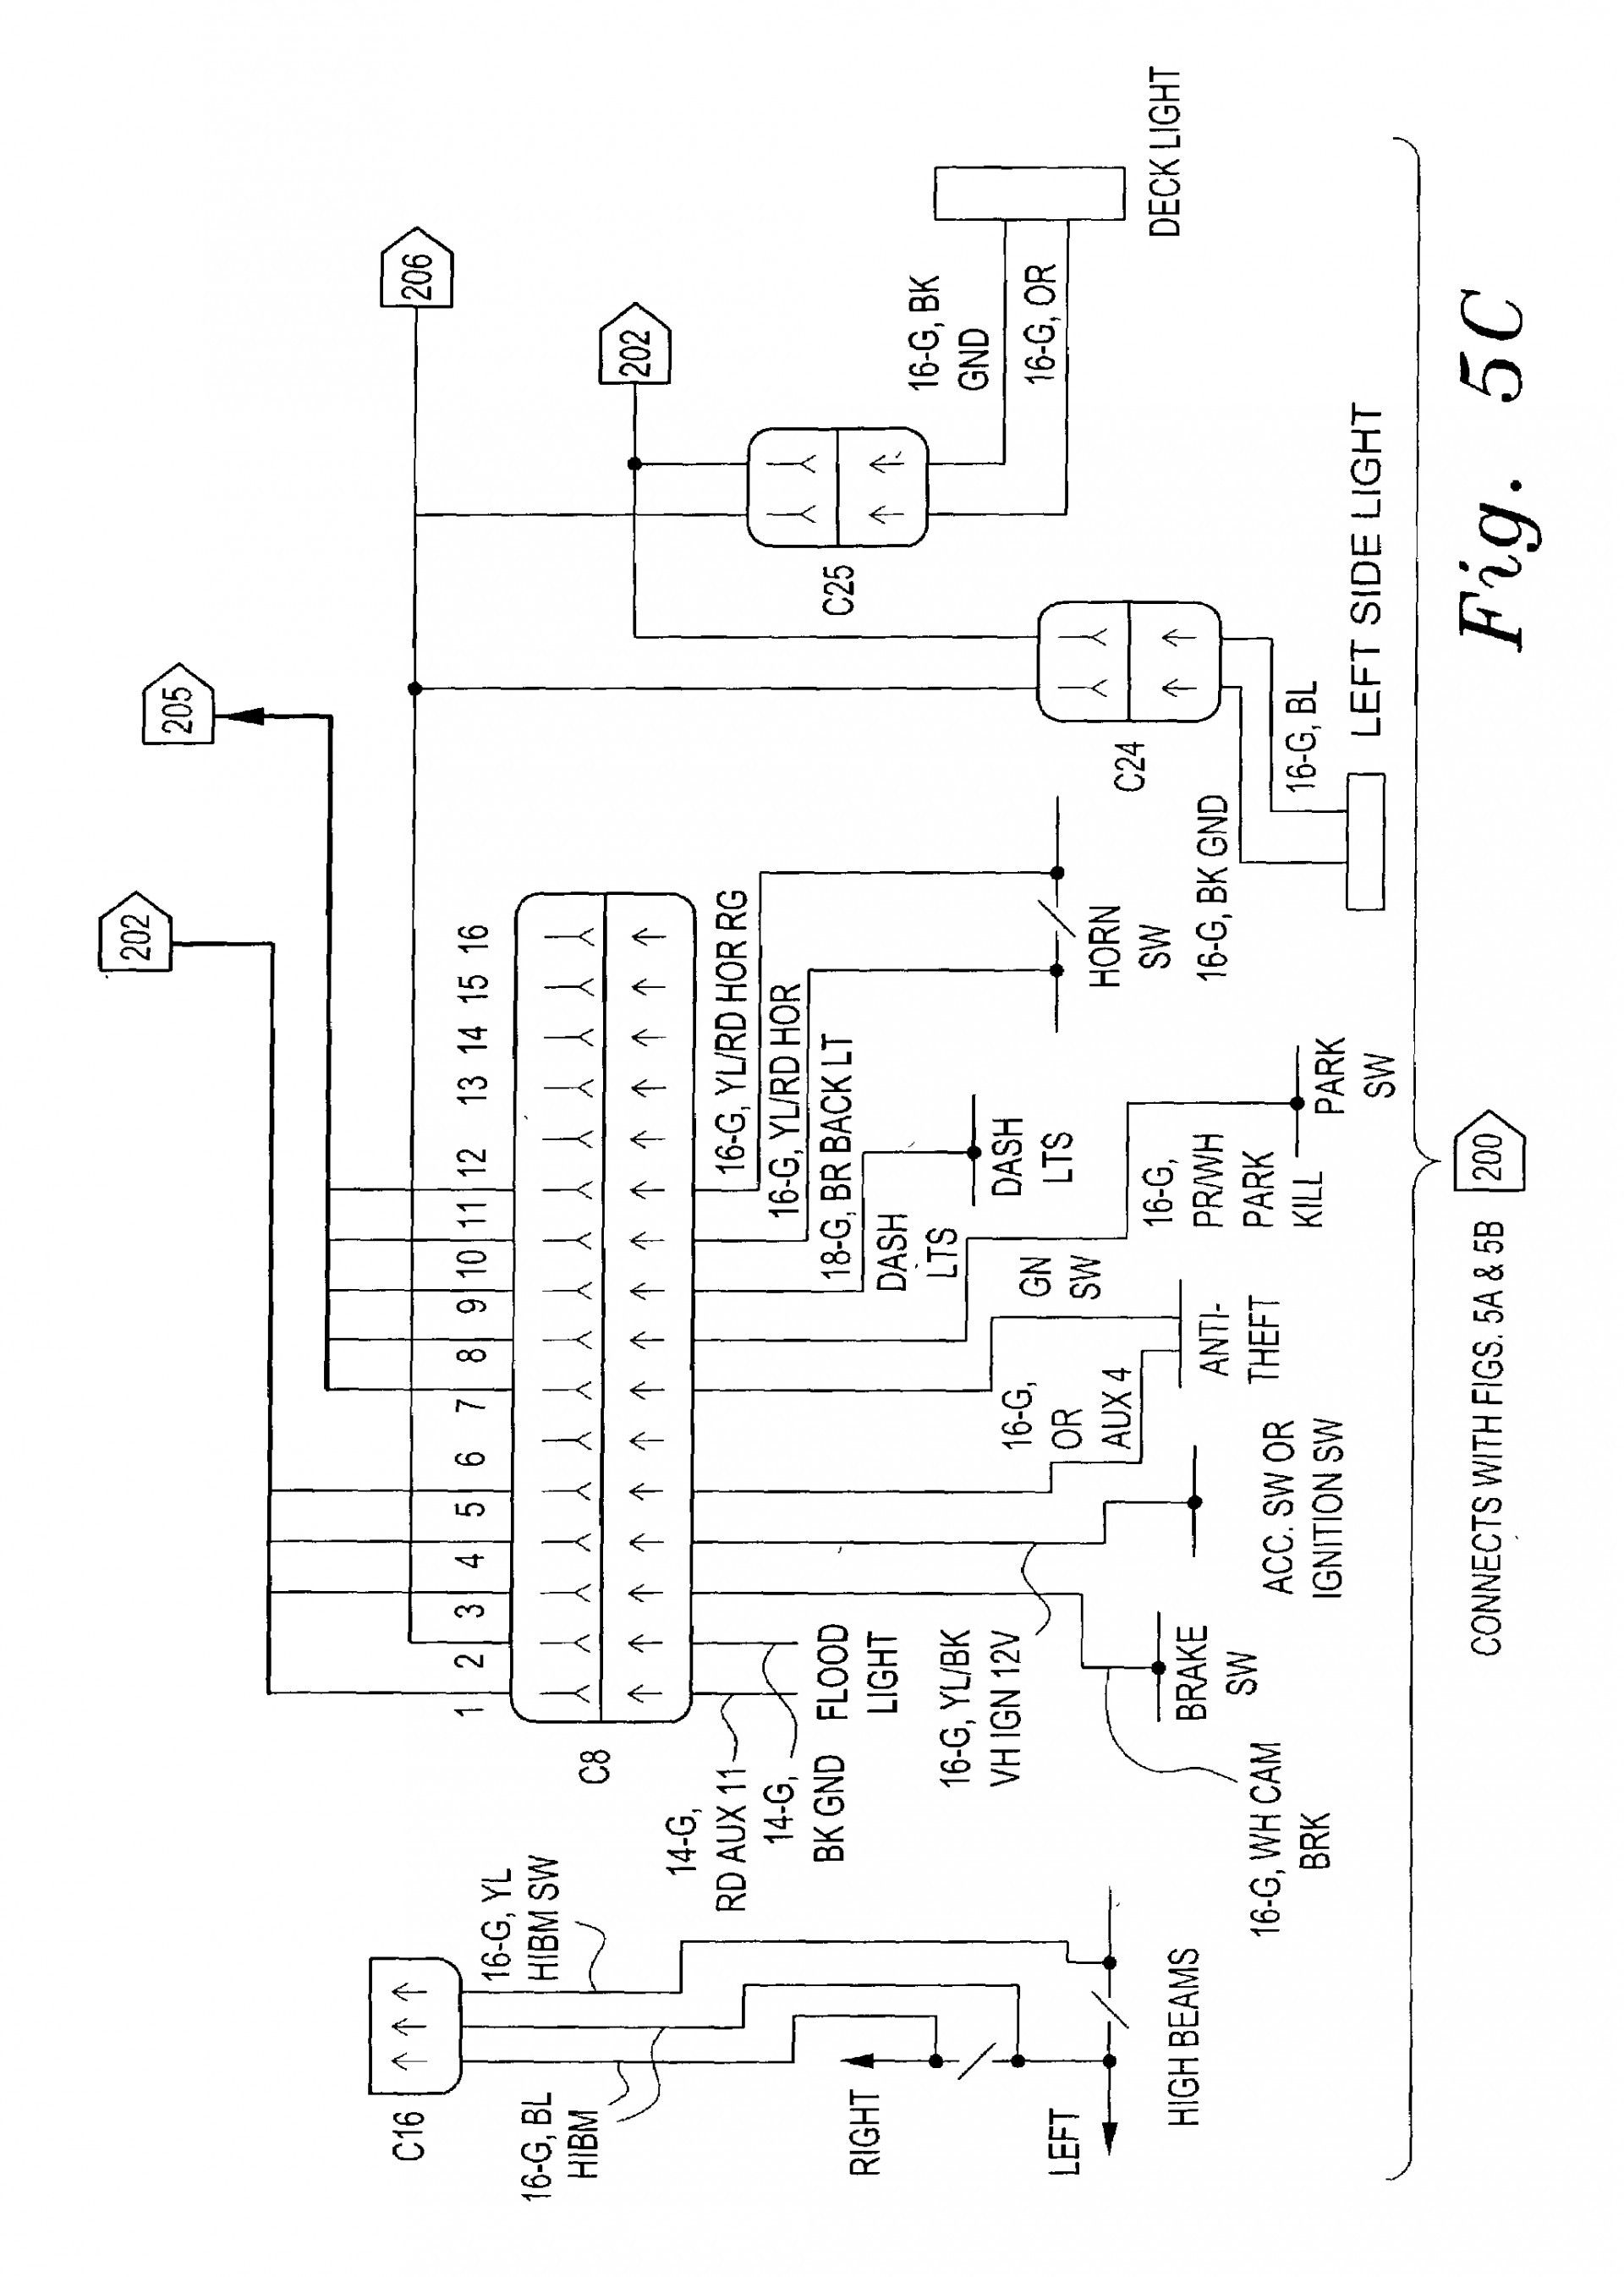 hight resolution of federal signal legend lightbar wiring diagram